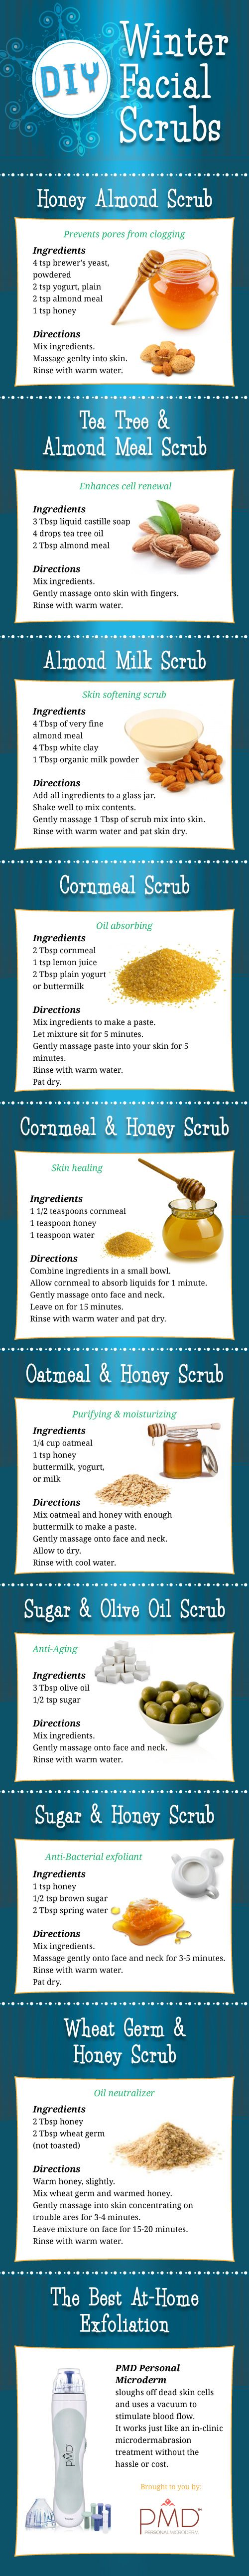 Winter Facial Scrubs: can be made with common ingredients at home, meaning less packaging and fewer chemicals